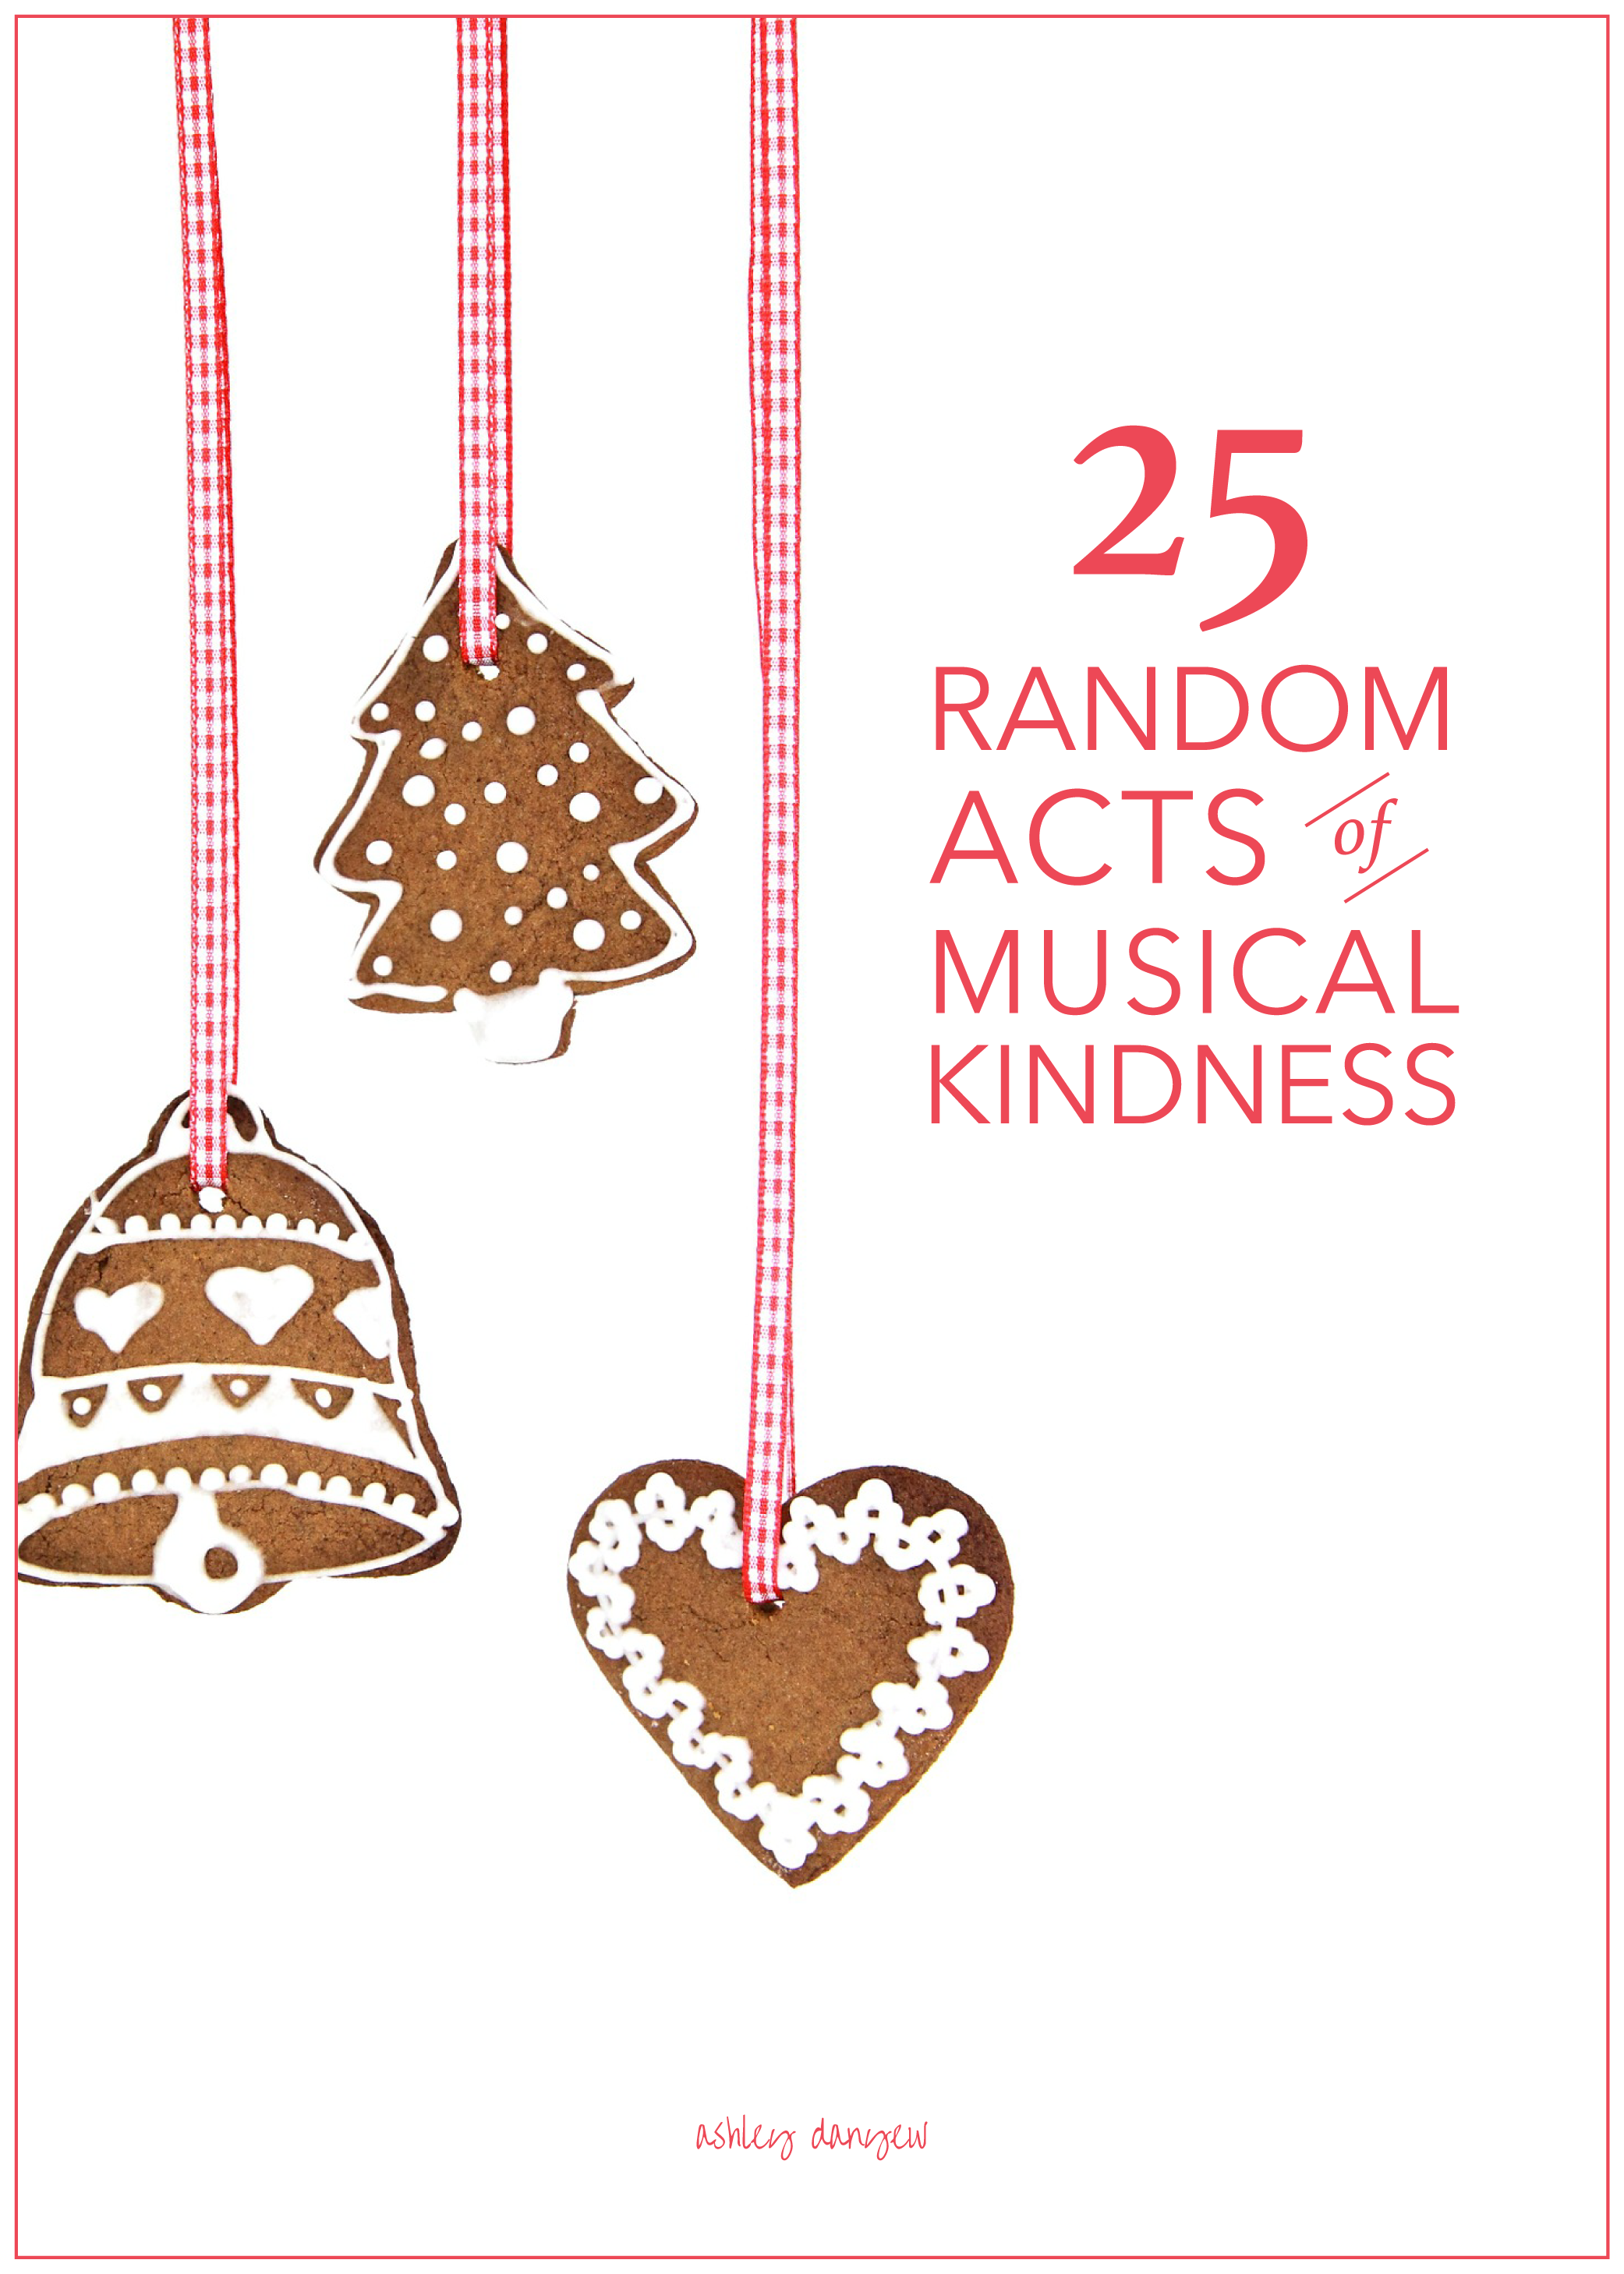 Copy of 25 Random Acts of Musical Kindness